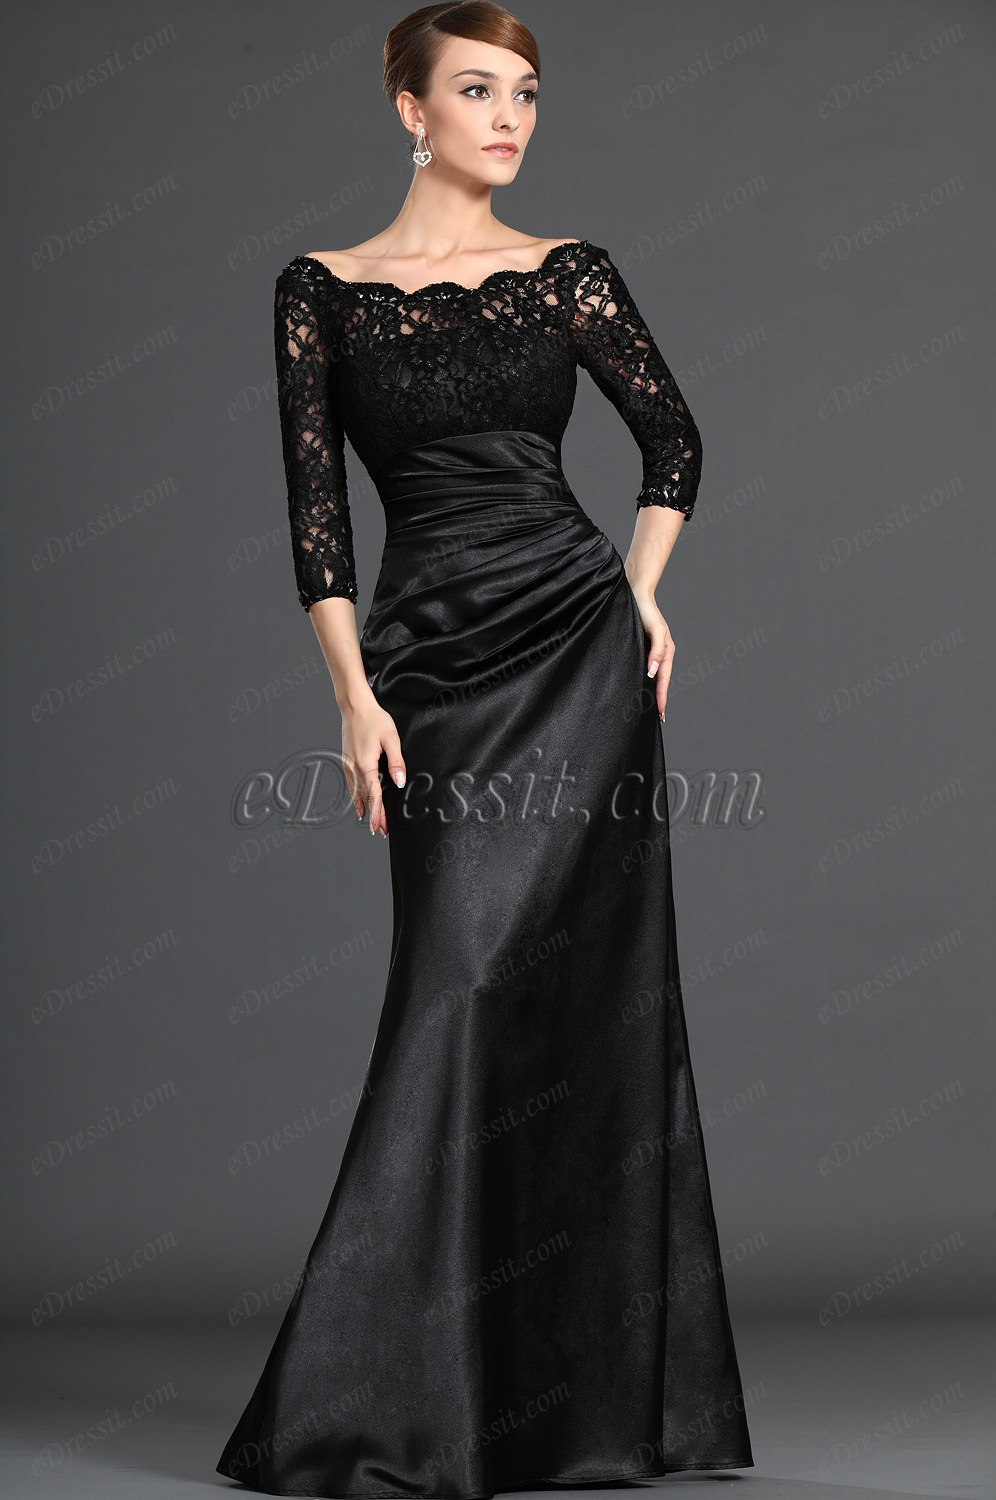 Clearance Sale !eDressit Mother of the Bride Dress (26121800C)